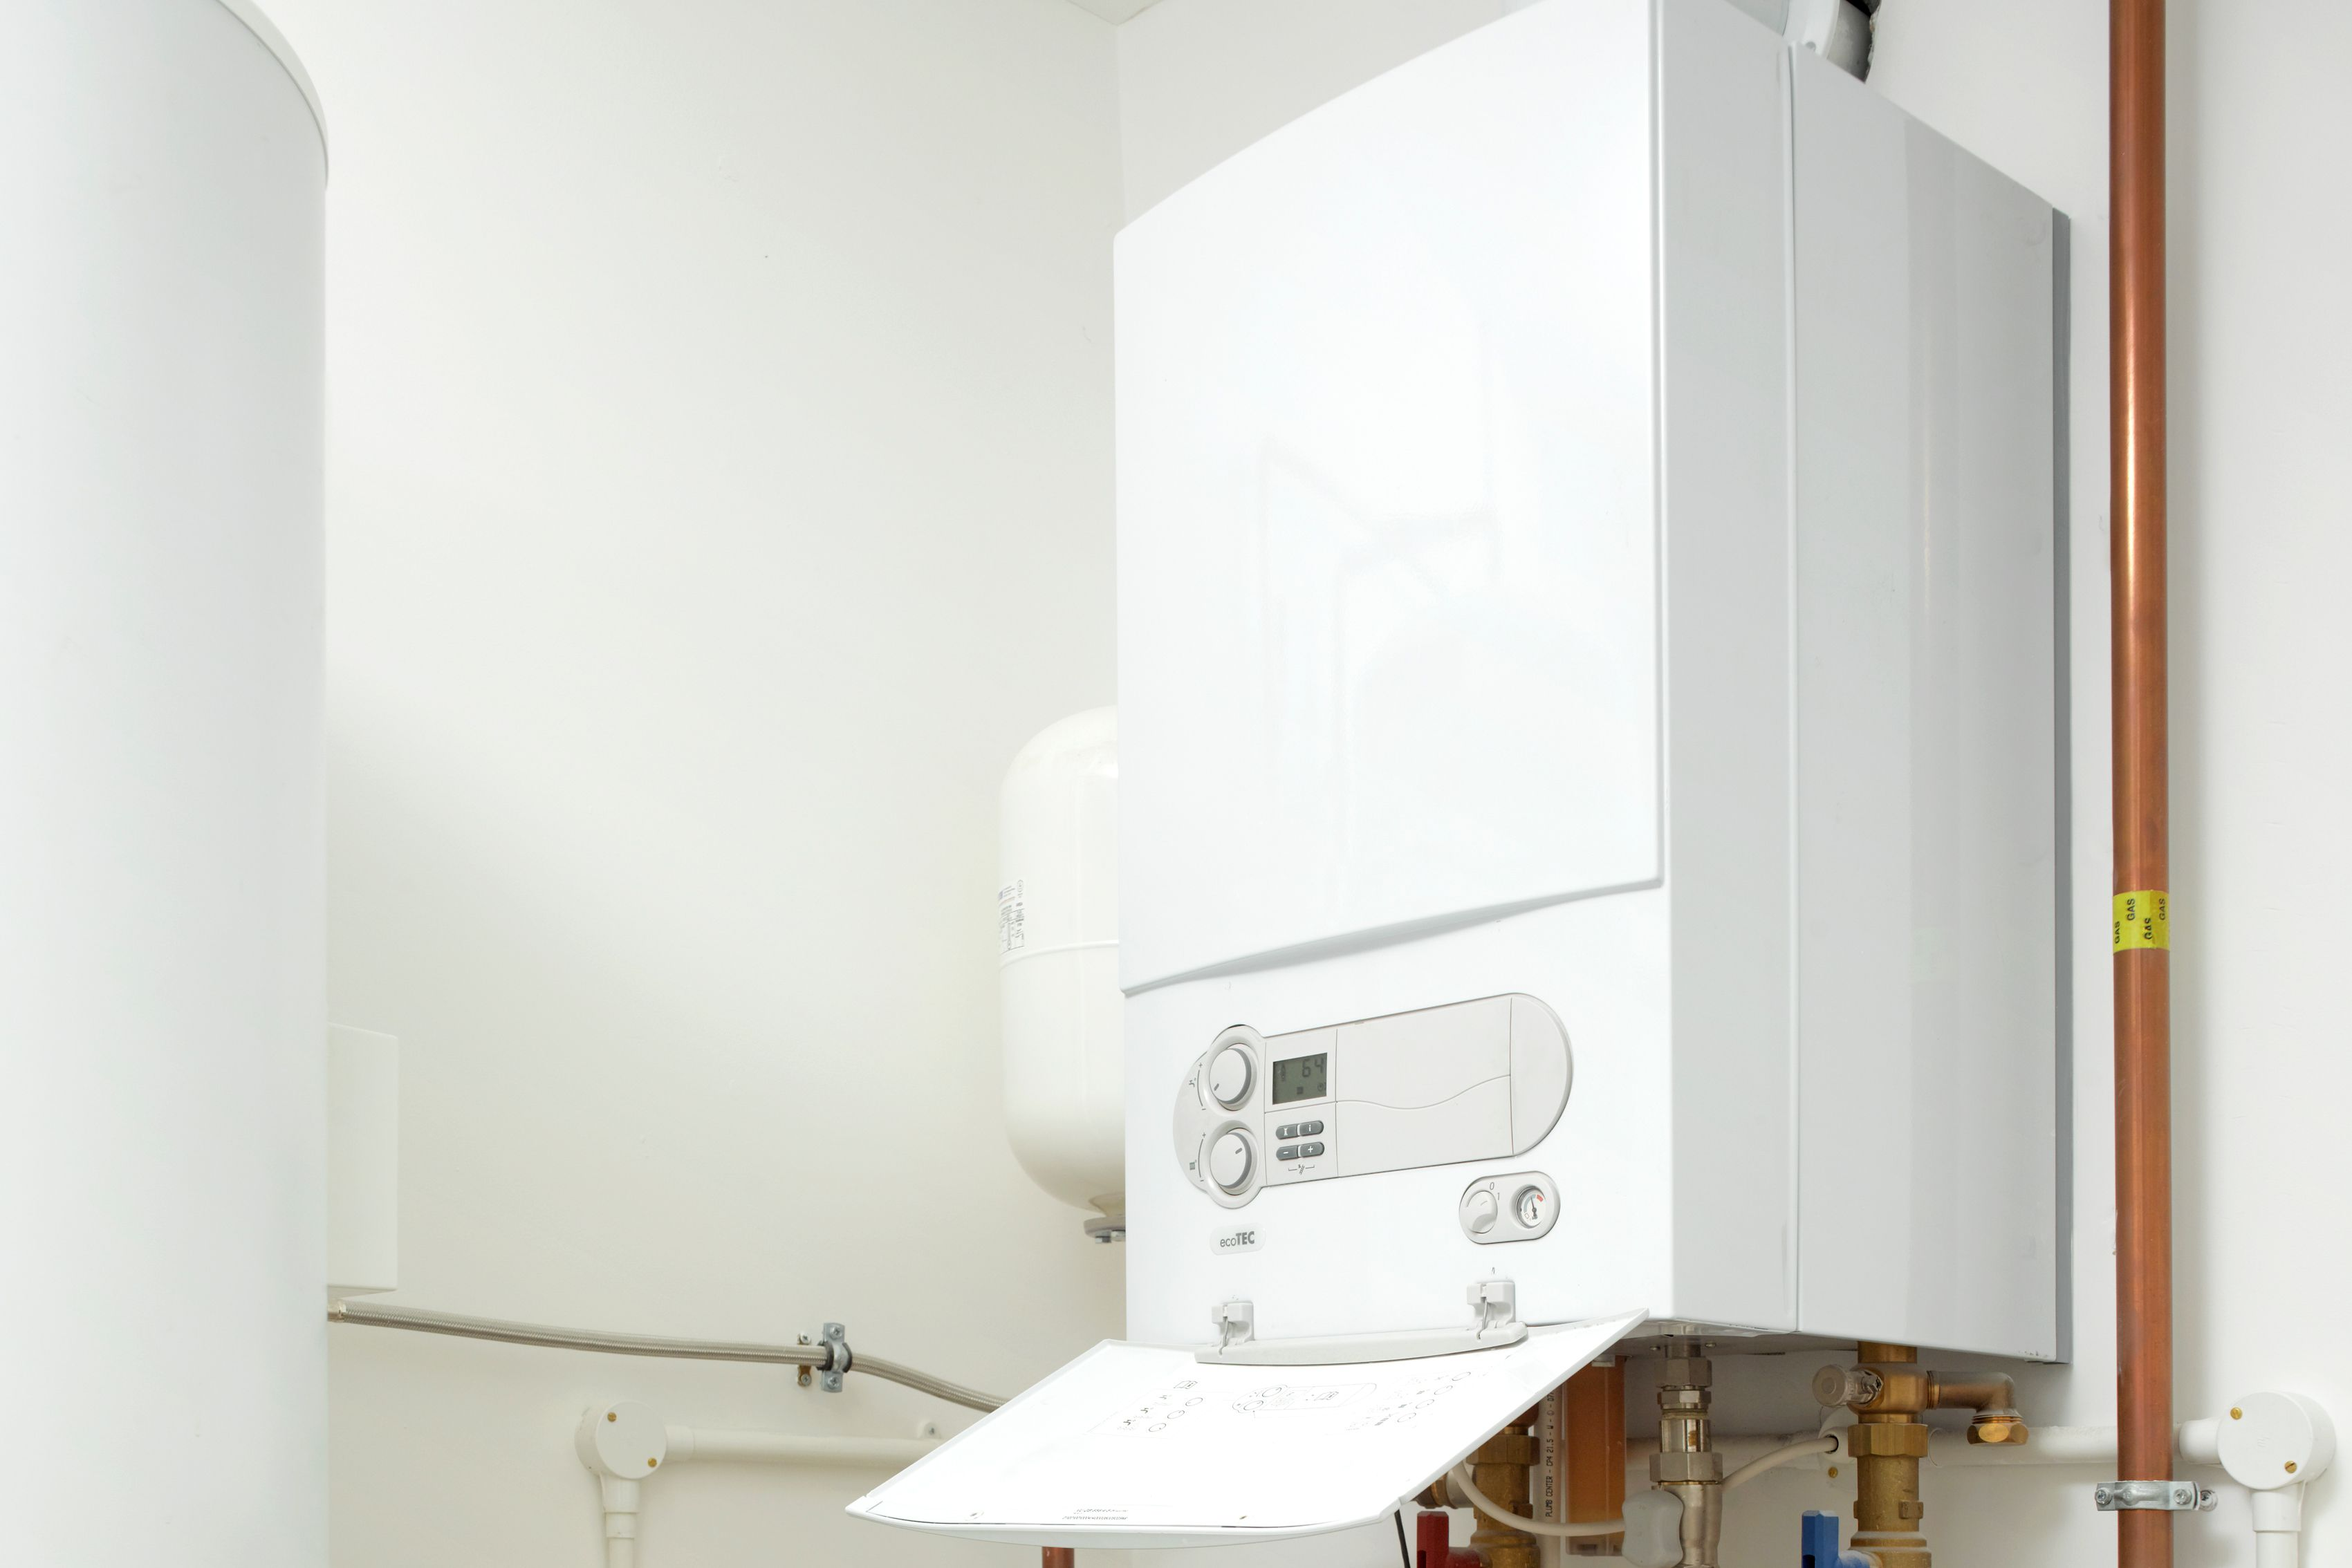 What you need to know about residential steam boilers - All you need to know about steam showers ...